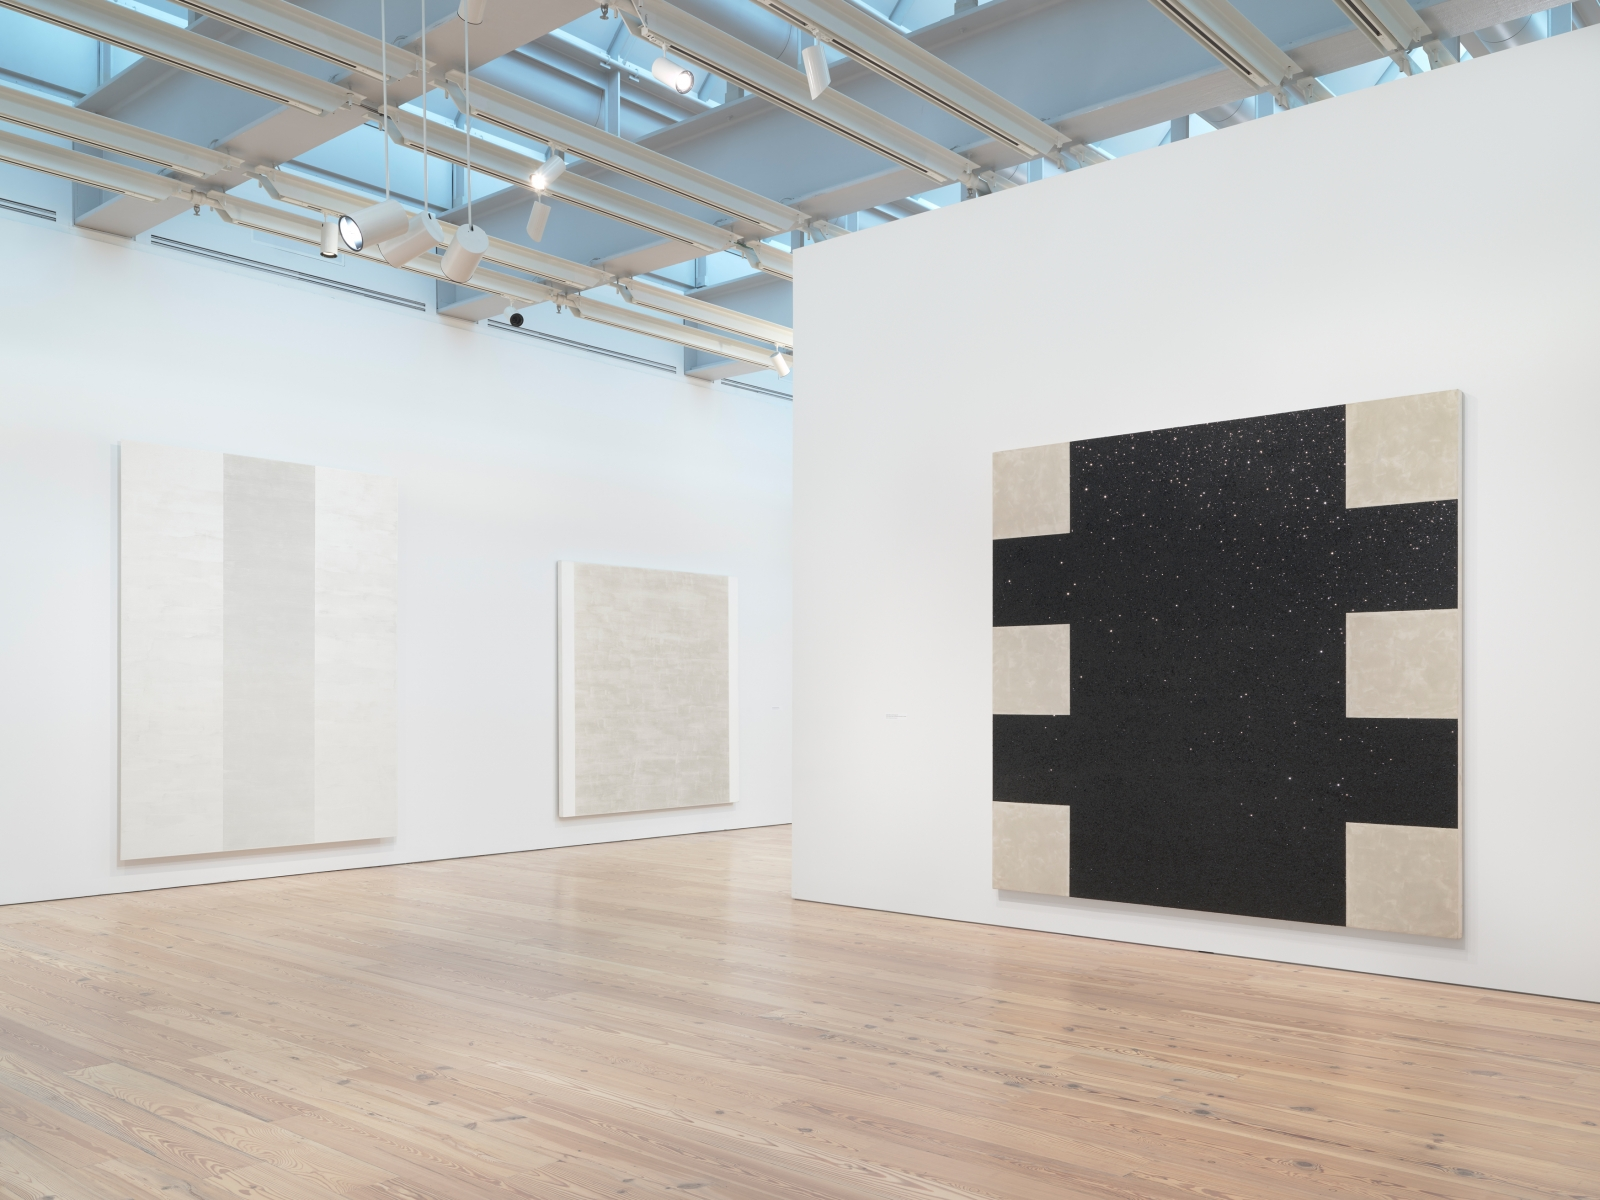 Installation photo of the 2018 exhibition Mary Corse: A Survey in Light at the Whitney Museum of American Art, New York, view 9